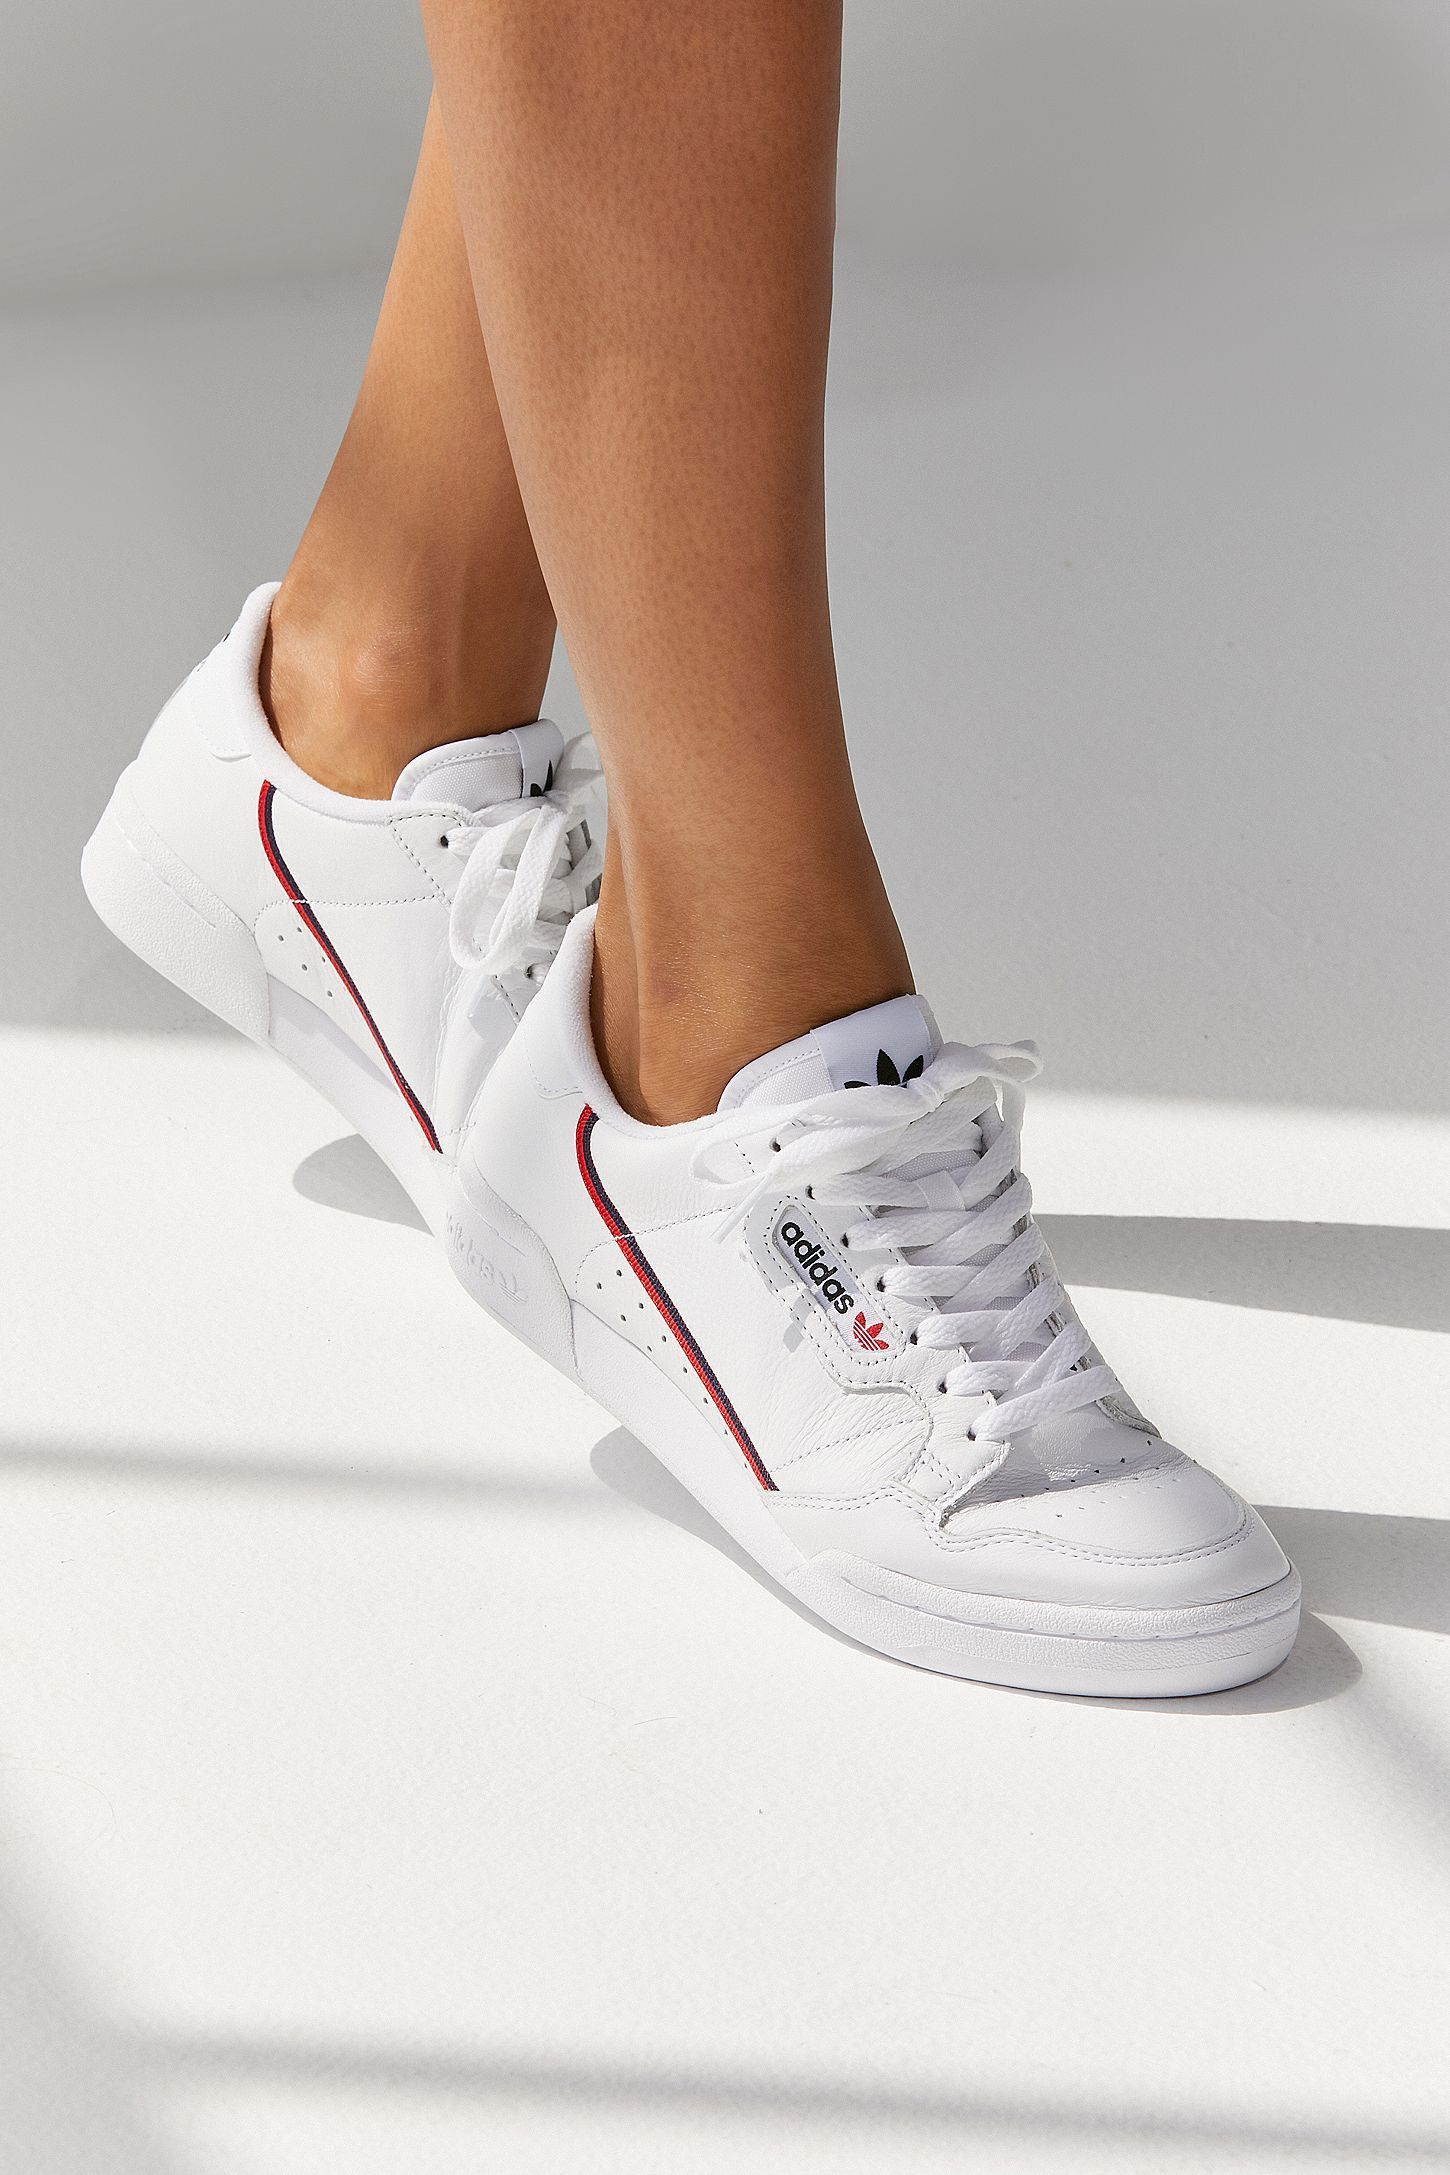 adidas Continental 80 Sneaker | Adidas shoes women, Sneakers ...